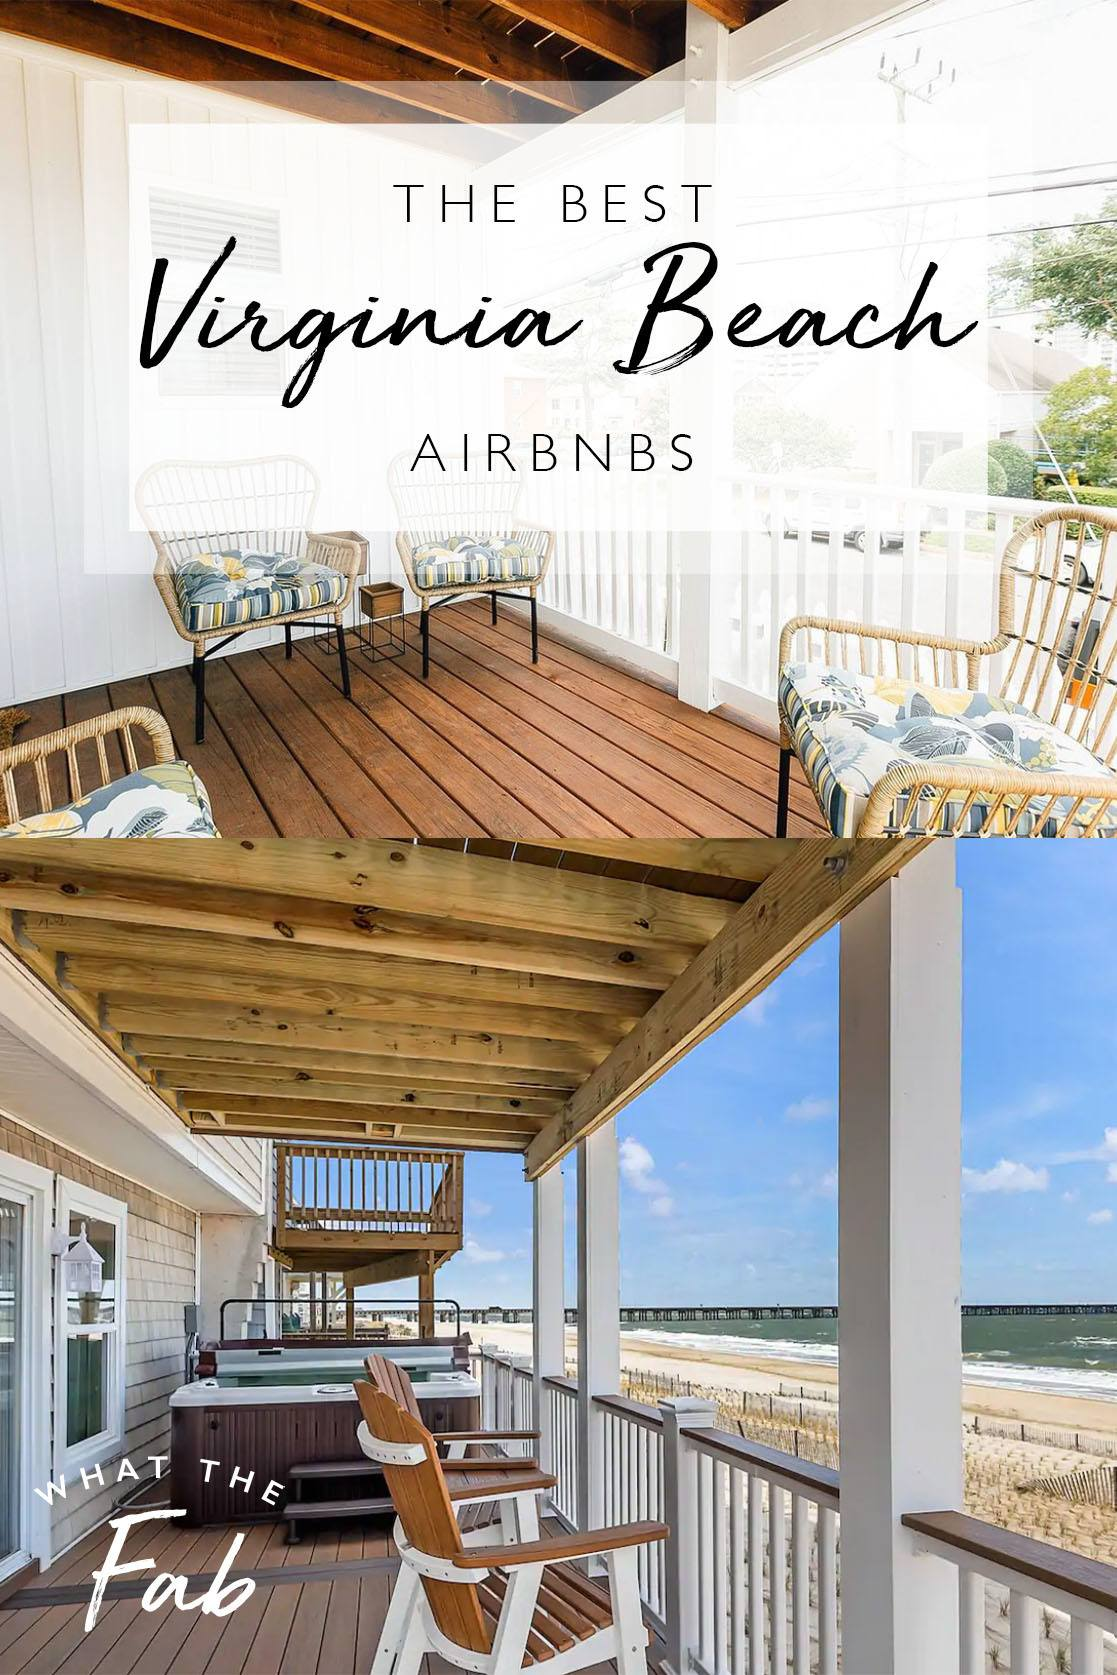 Airbnb Virginia Beach, by Travel Blogger What The Fab